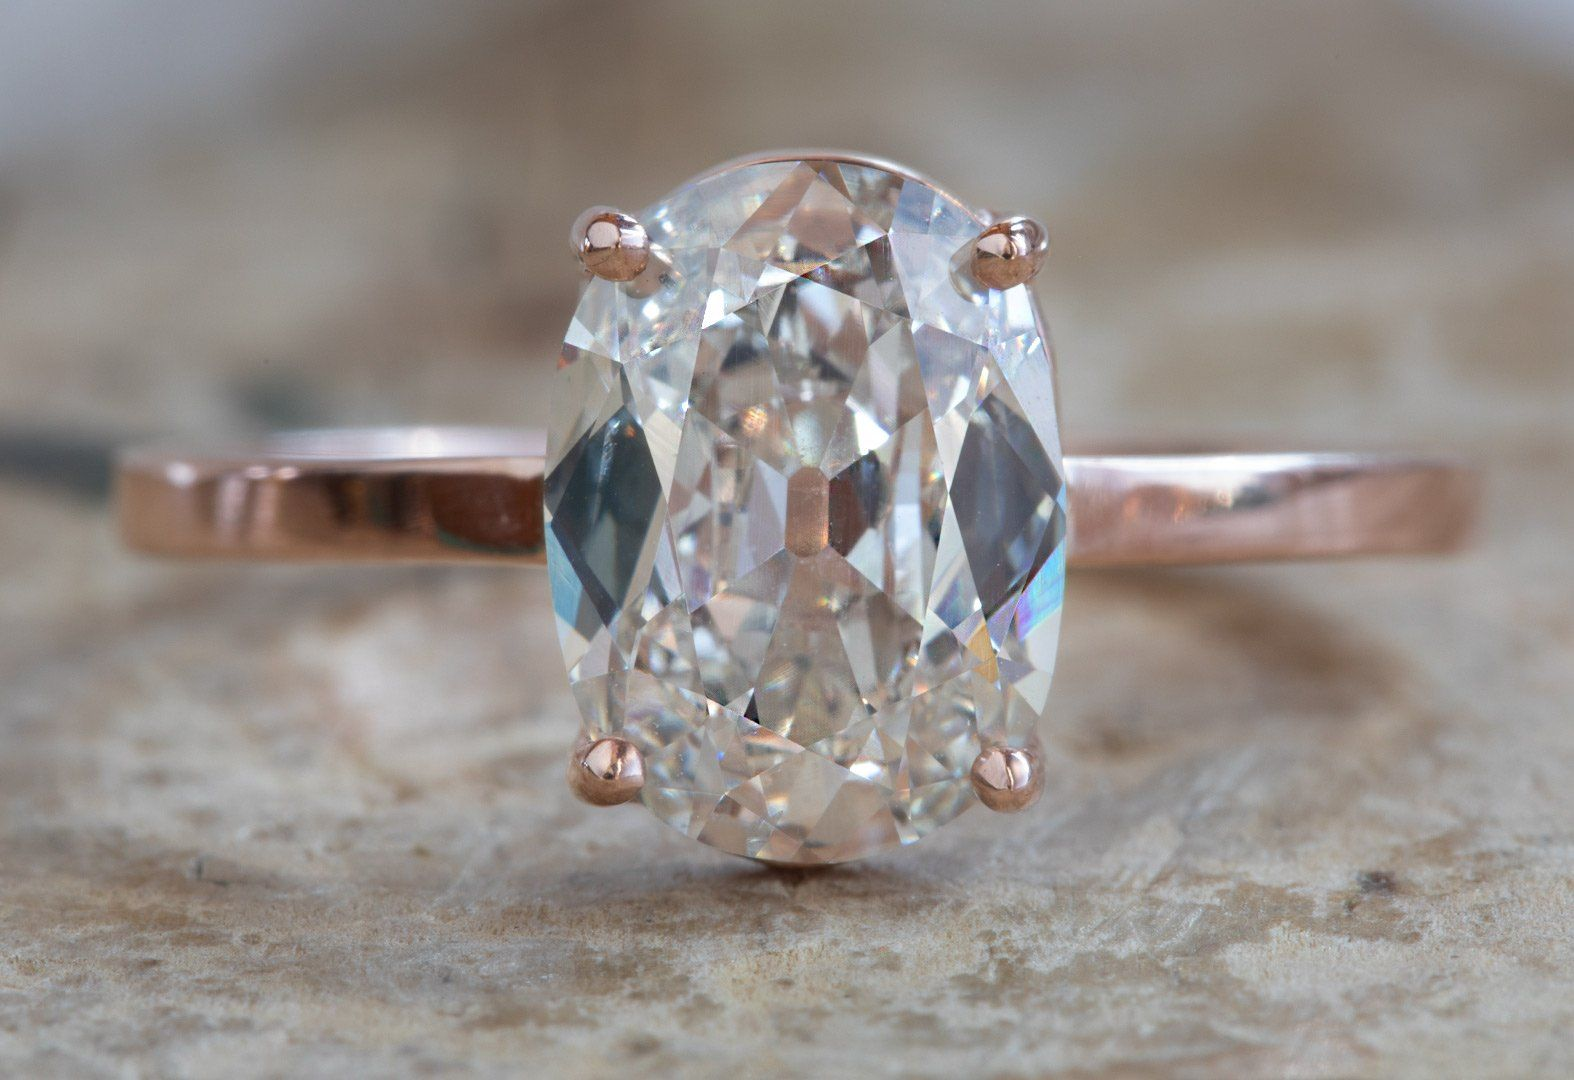 One of a Kind Pale Pink Old Mine Cut Diamond Engagement Ring - Engagement ring diamond cut, Engagement rings, Classic engagement rings, Diamond cuts, Rose gold band ring, Vintage engagement rings - stacking bands shown are available here